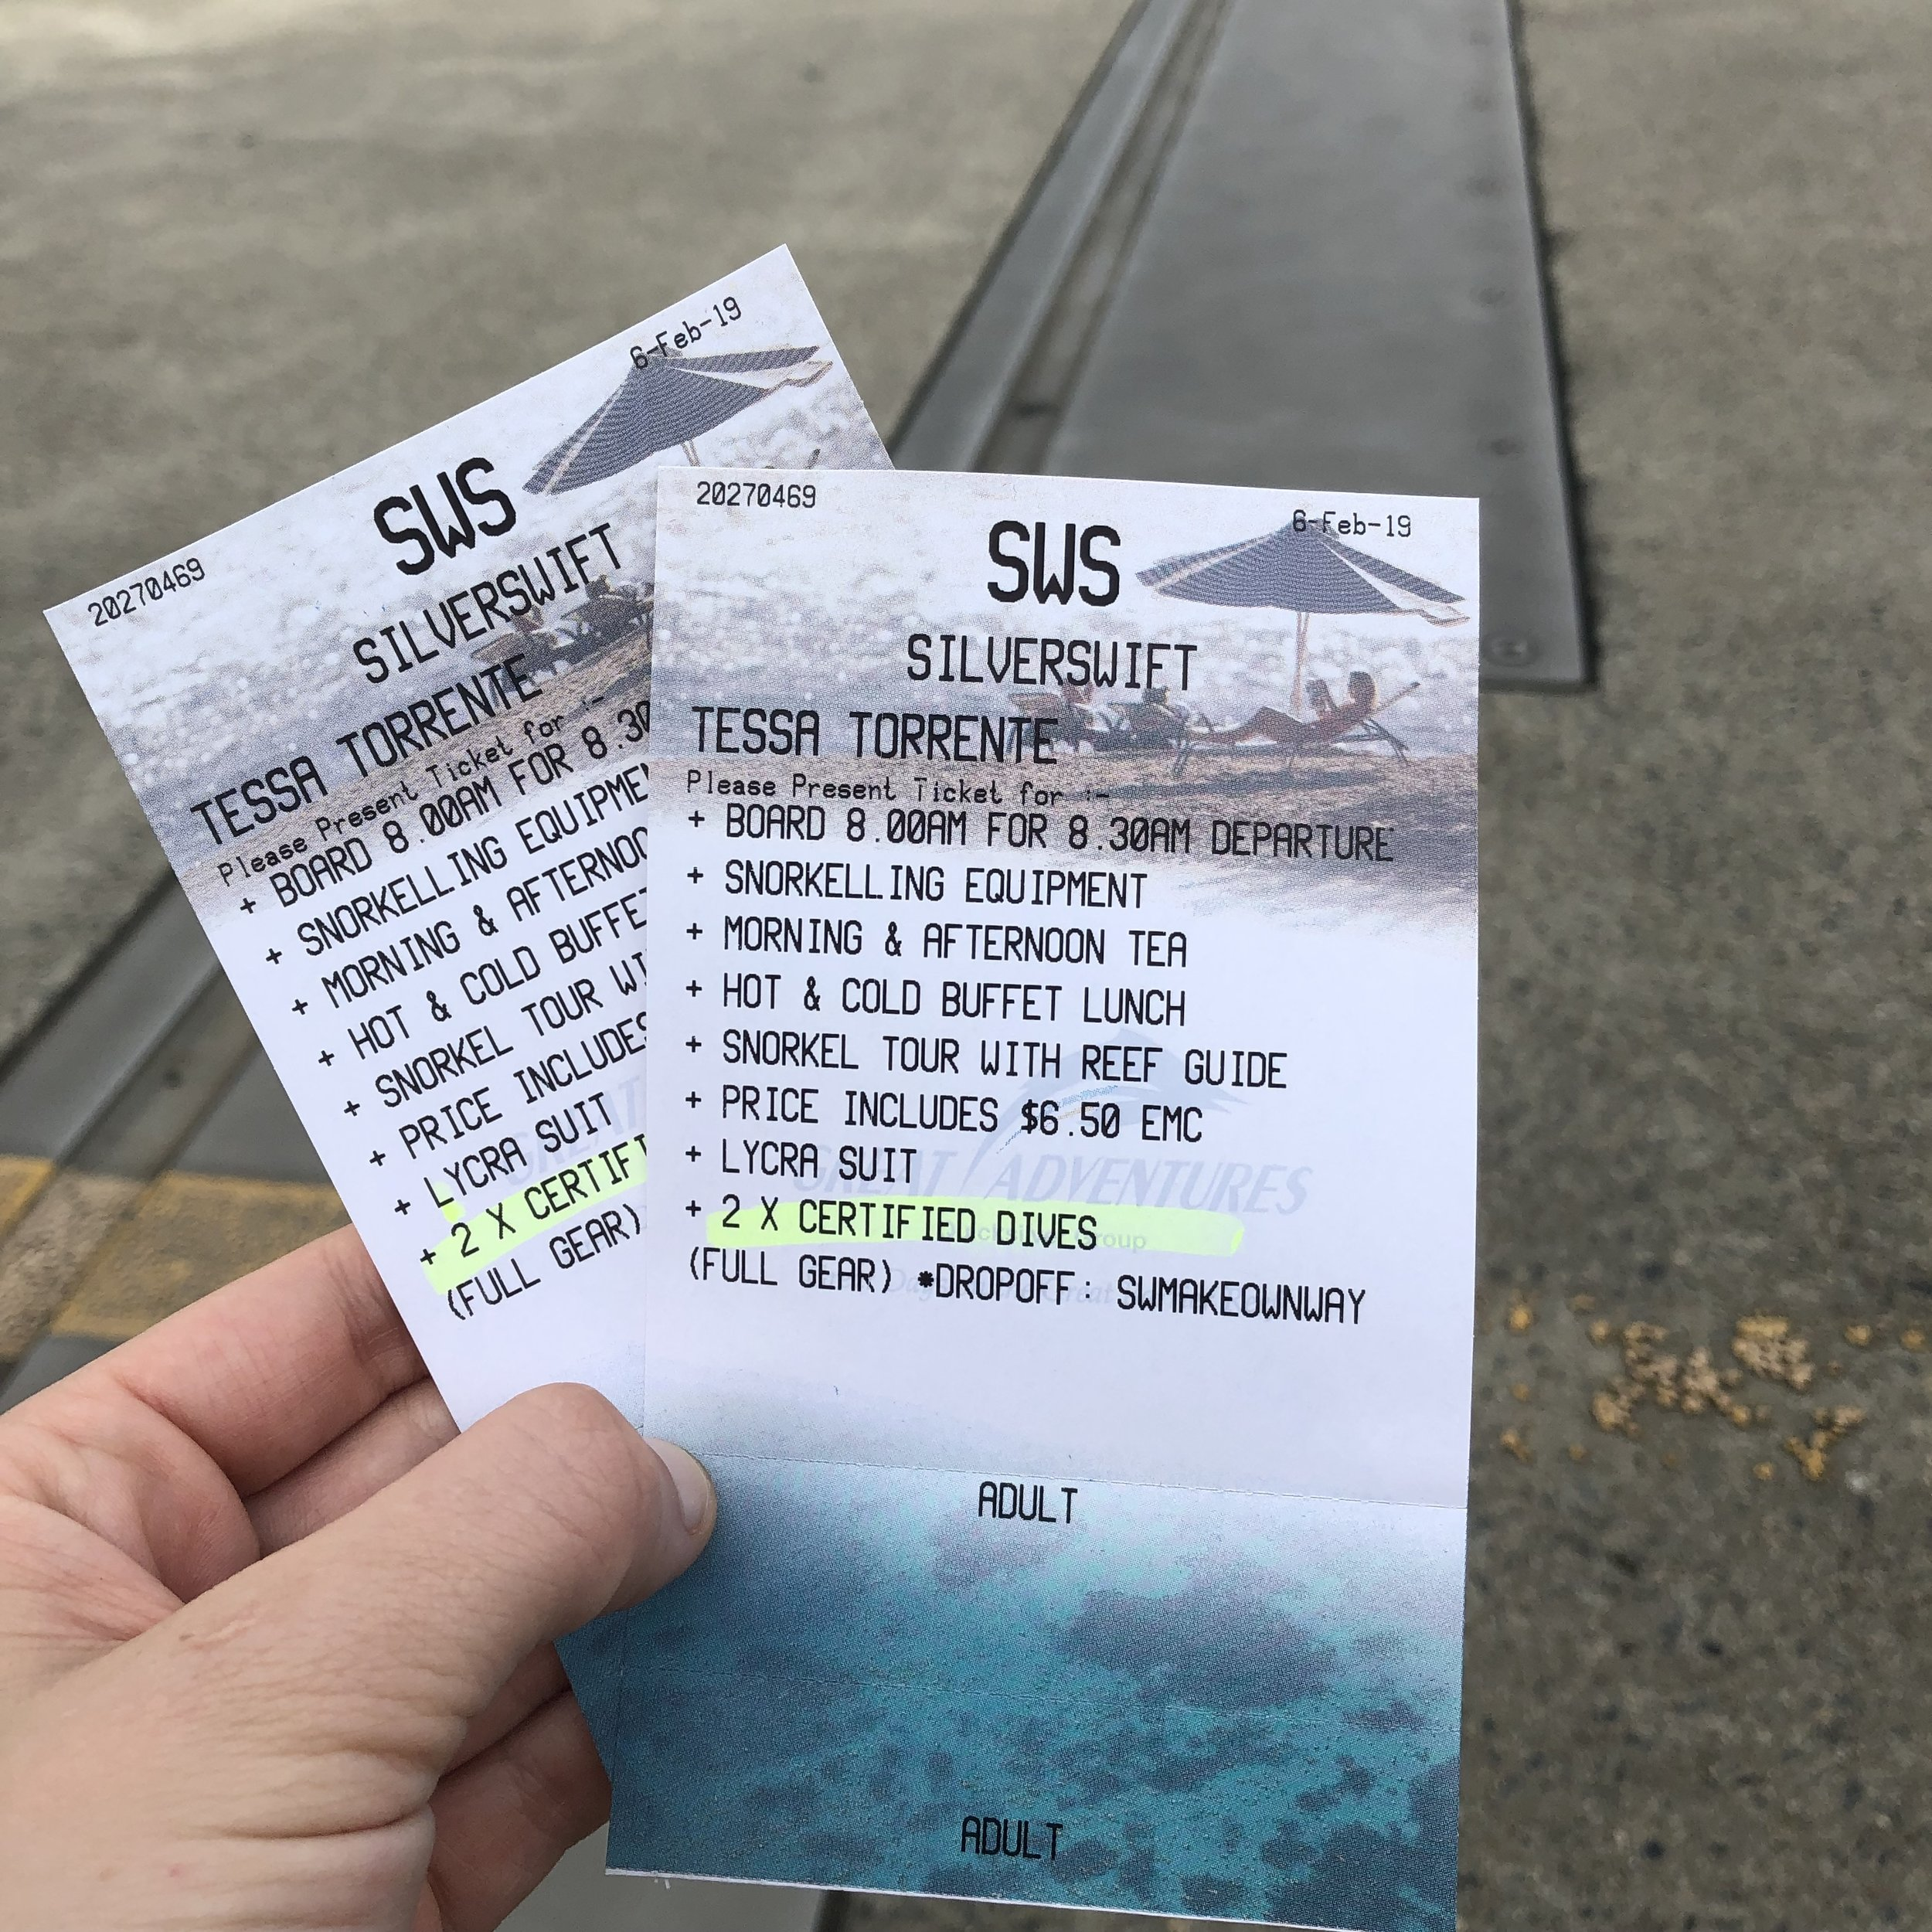 Vouchers exchanged for tickets, ready to board the boat for a day of diving.